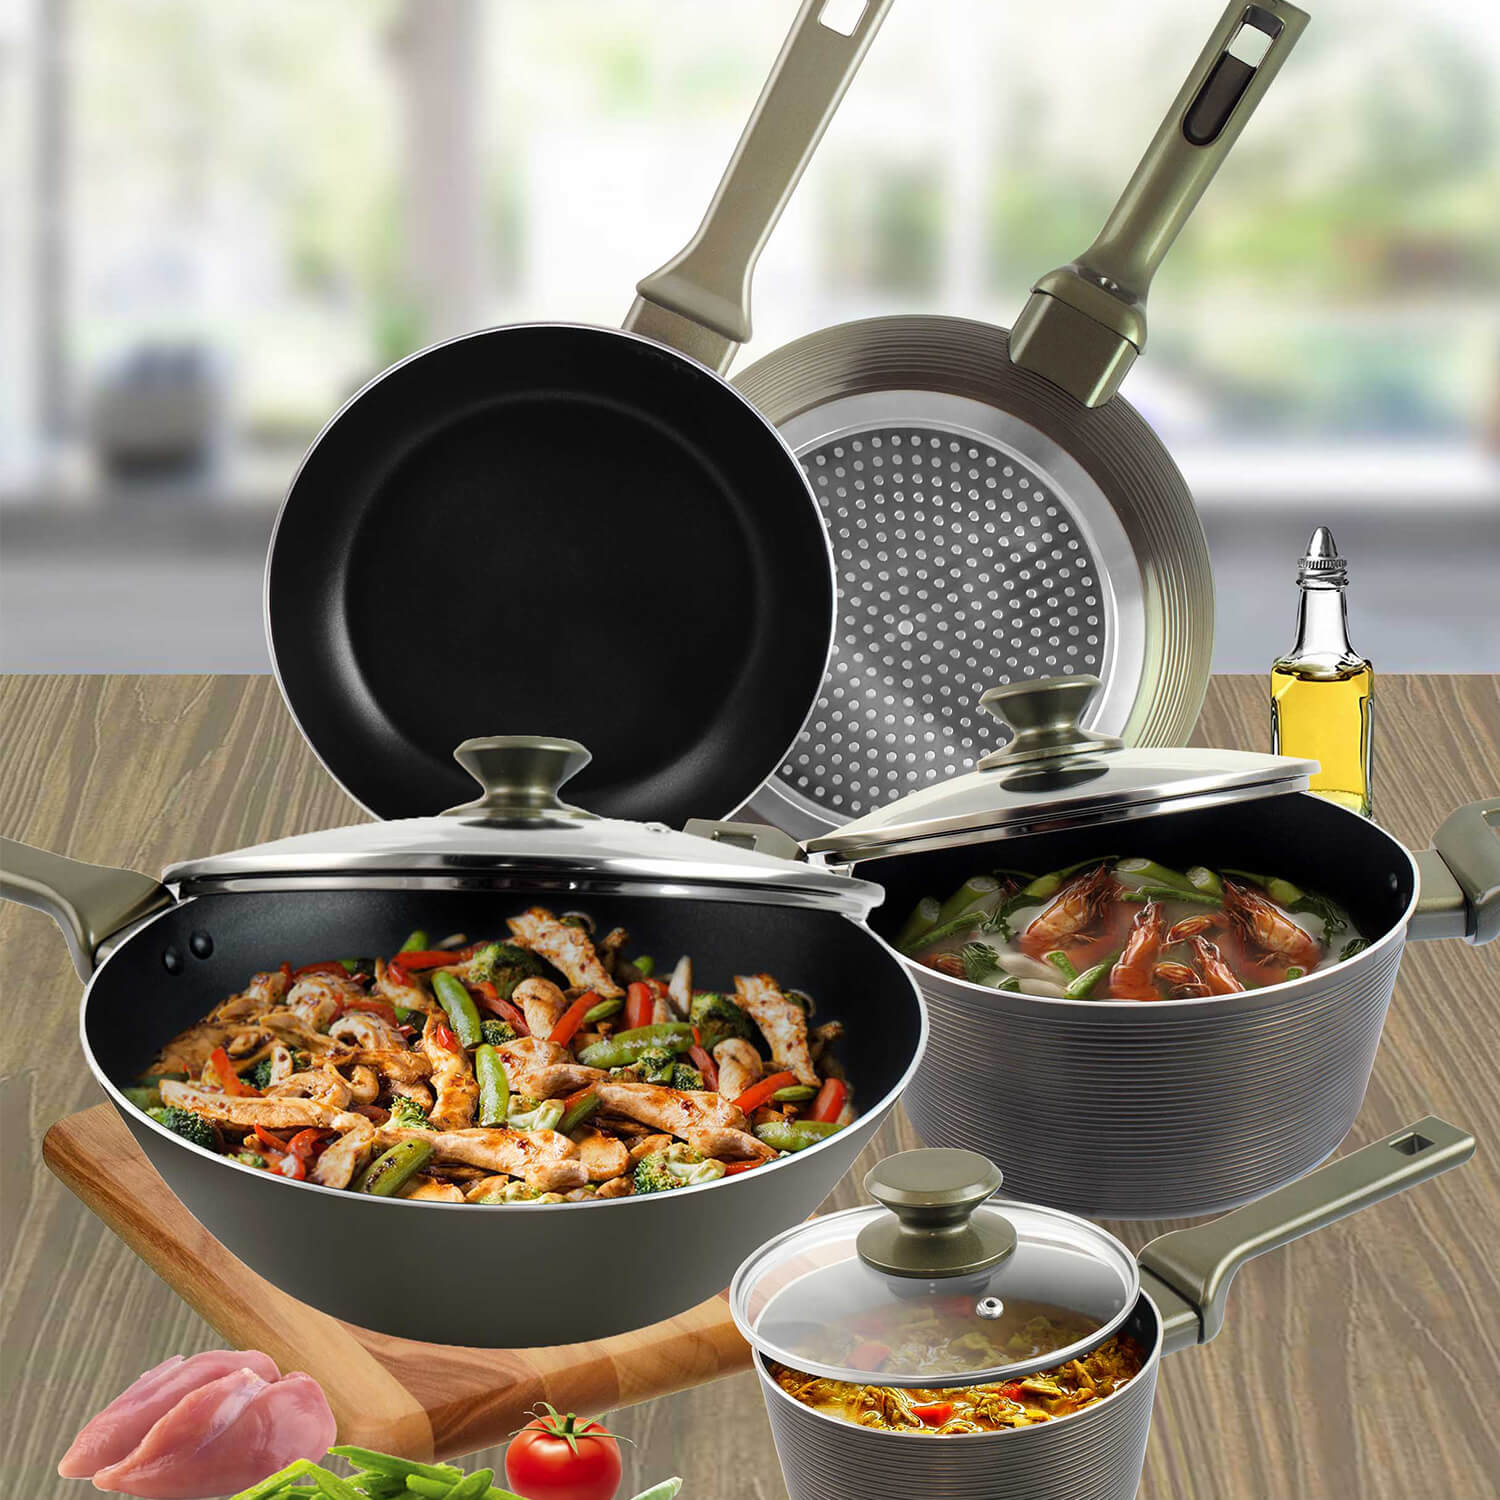 Masflex Forged Galaxy Cookware Set